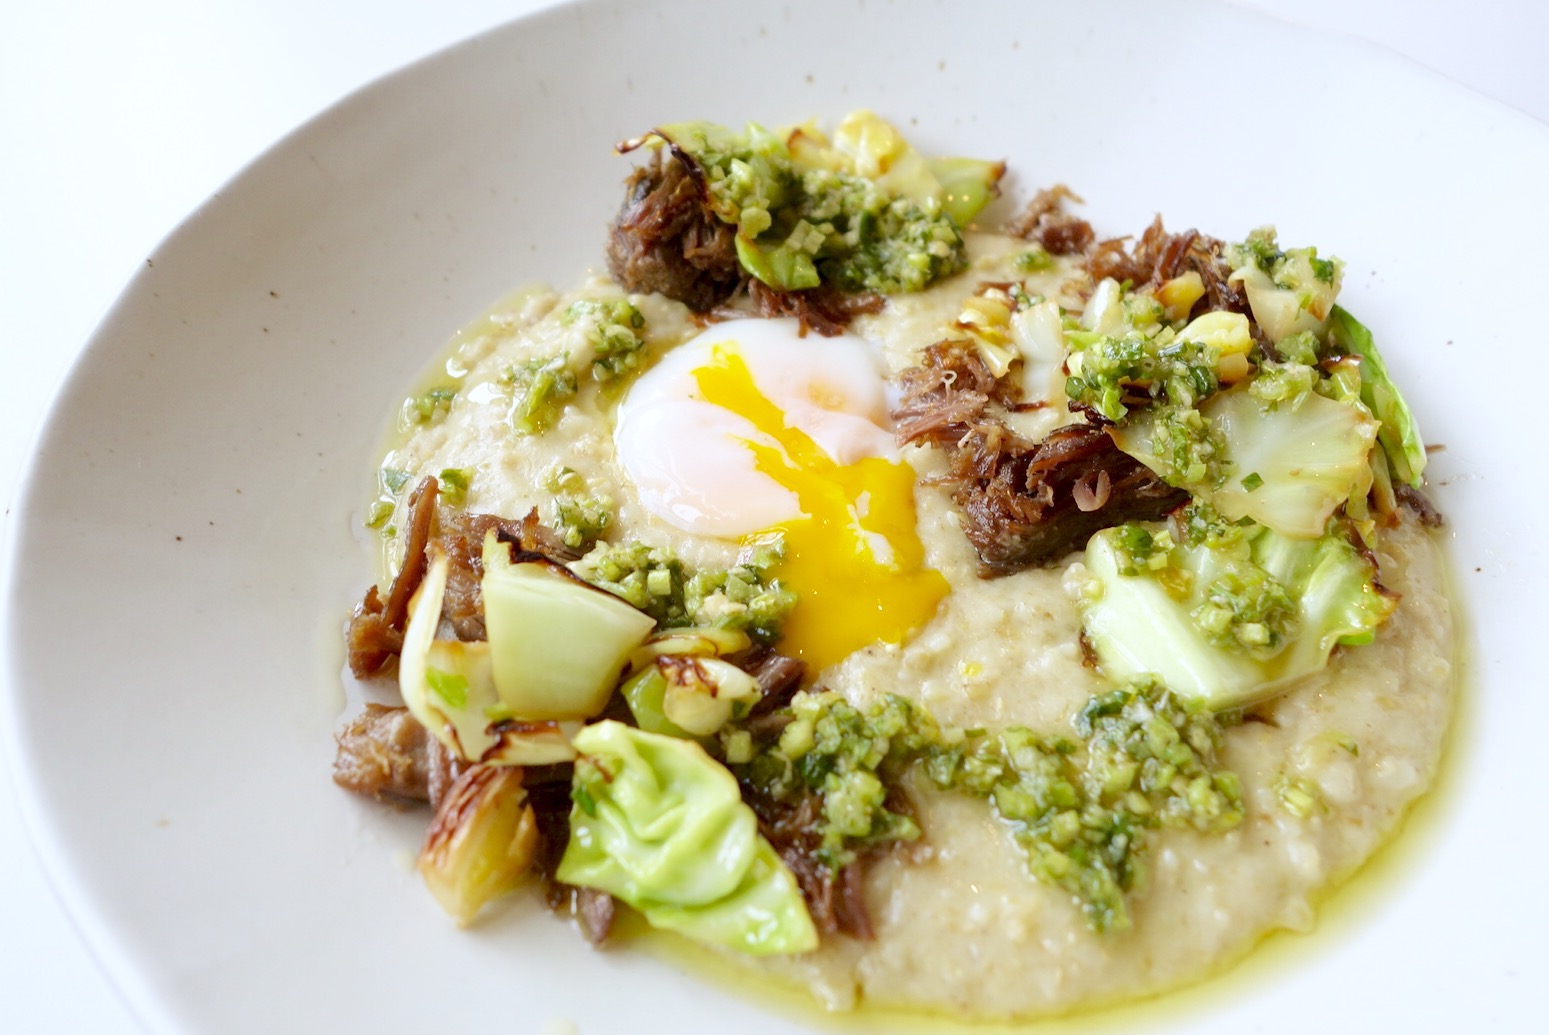 Kismet's freekeh polenta is served with lamb, green chiles, greens and a soft-boiled egg.